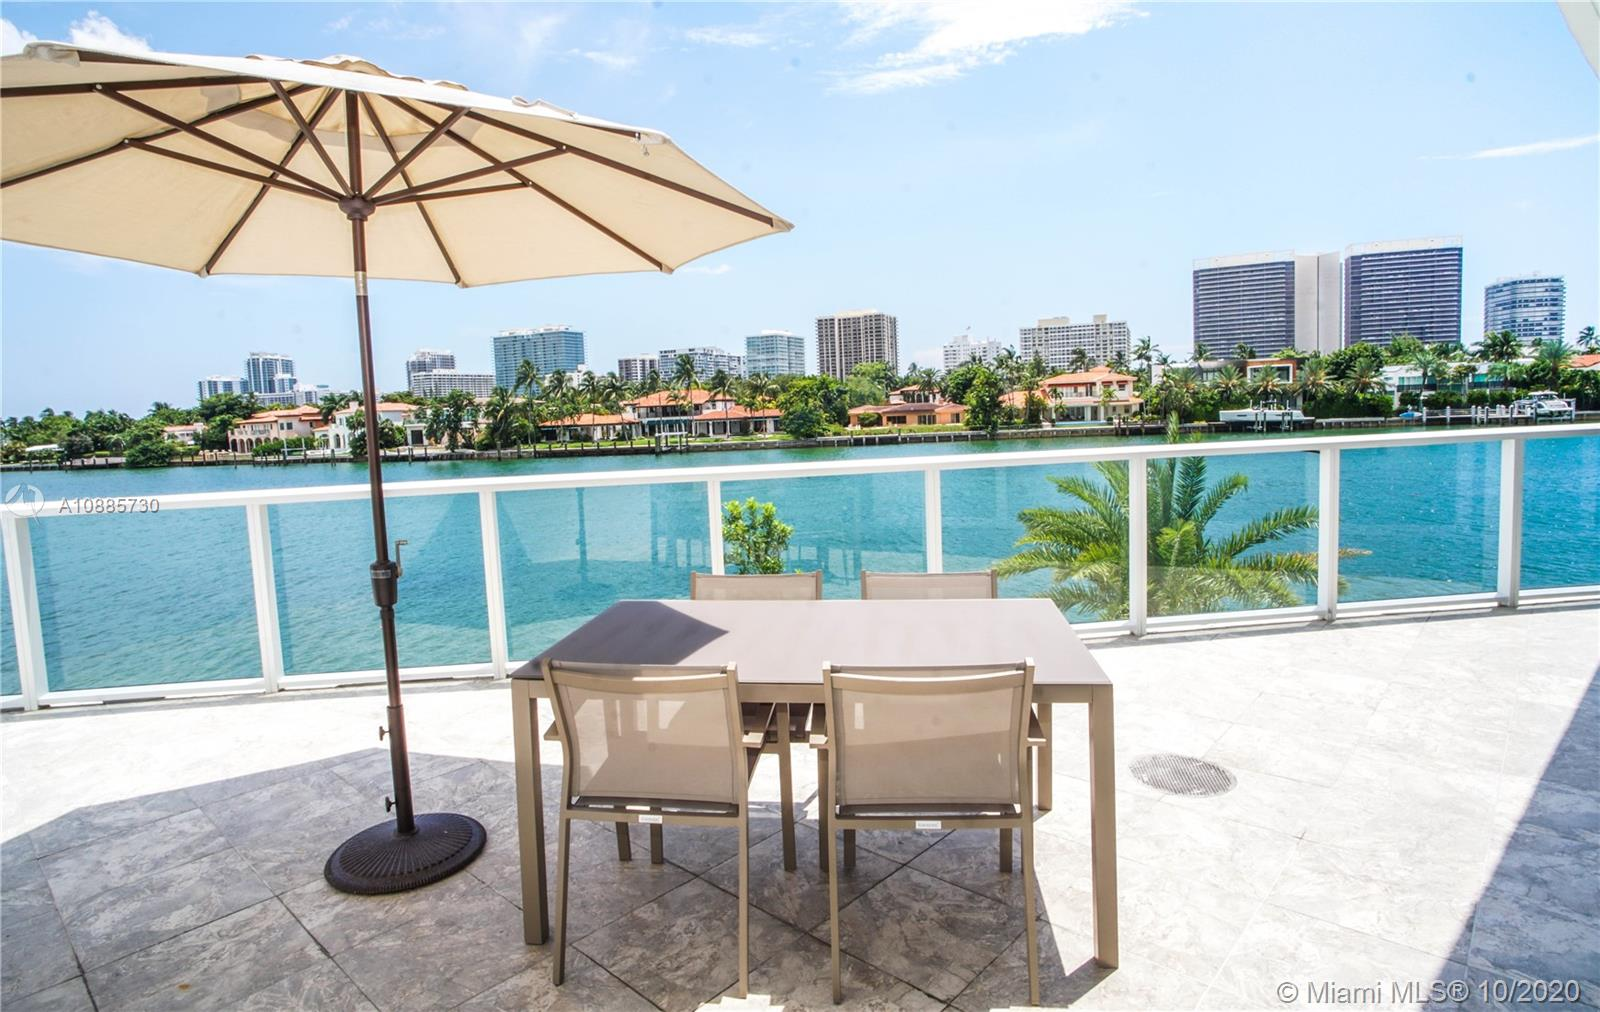 DIRECT WATER VIEWS from this luxurious 2 bedroom unit at O Residences in Bay Harbor Islands. THIS UNIT HAS THE LARGEST WATERFRONT TERRACE IN THE BUILDING (450 SQFT). Beautiful Italian porcelain floors throughout with marble floors in the bathrooms, updated light fixtures, lots of closet space with built in shelving, floor to ceiling windows, washer and dryer in unit, Viking appliances, quartz counter tops, etc. O Residences offers lots of upscale amenities including BBQ, 2 pools, hot tub, paddle board storage, community dock, gym and relaxing sauna. The HOA includes cable TV and internet. 2 assigned garage parking spaces right next to the elevator entrance and one assigned storage unit.